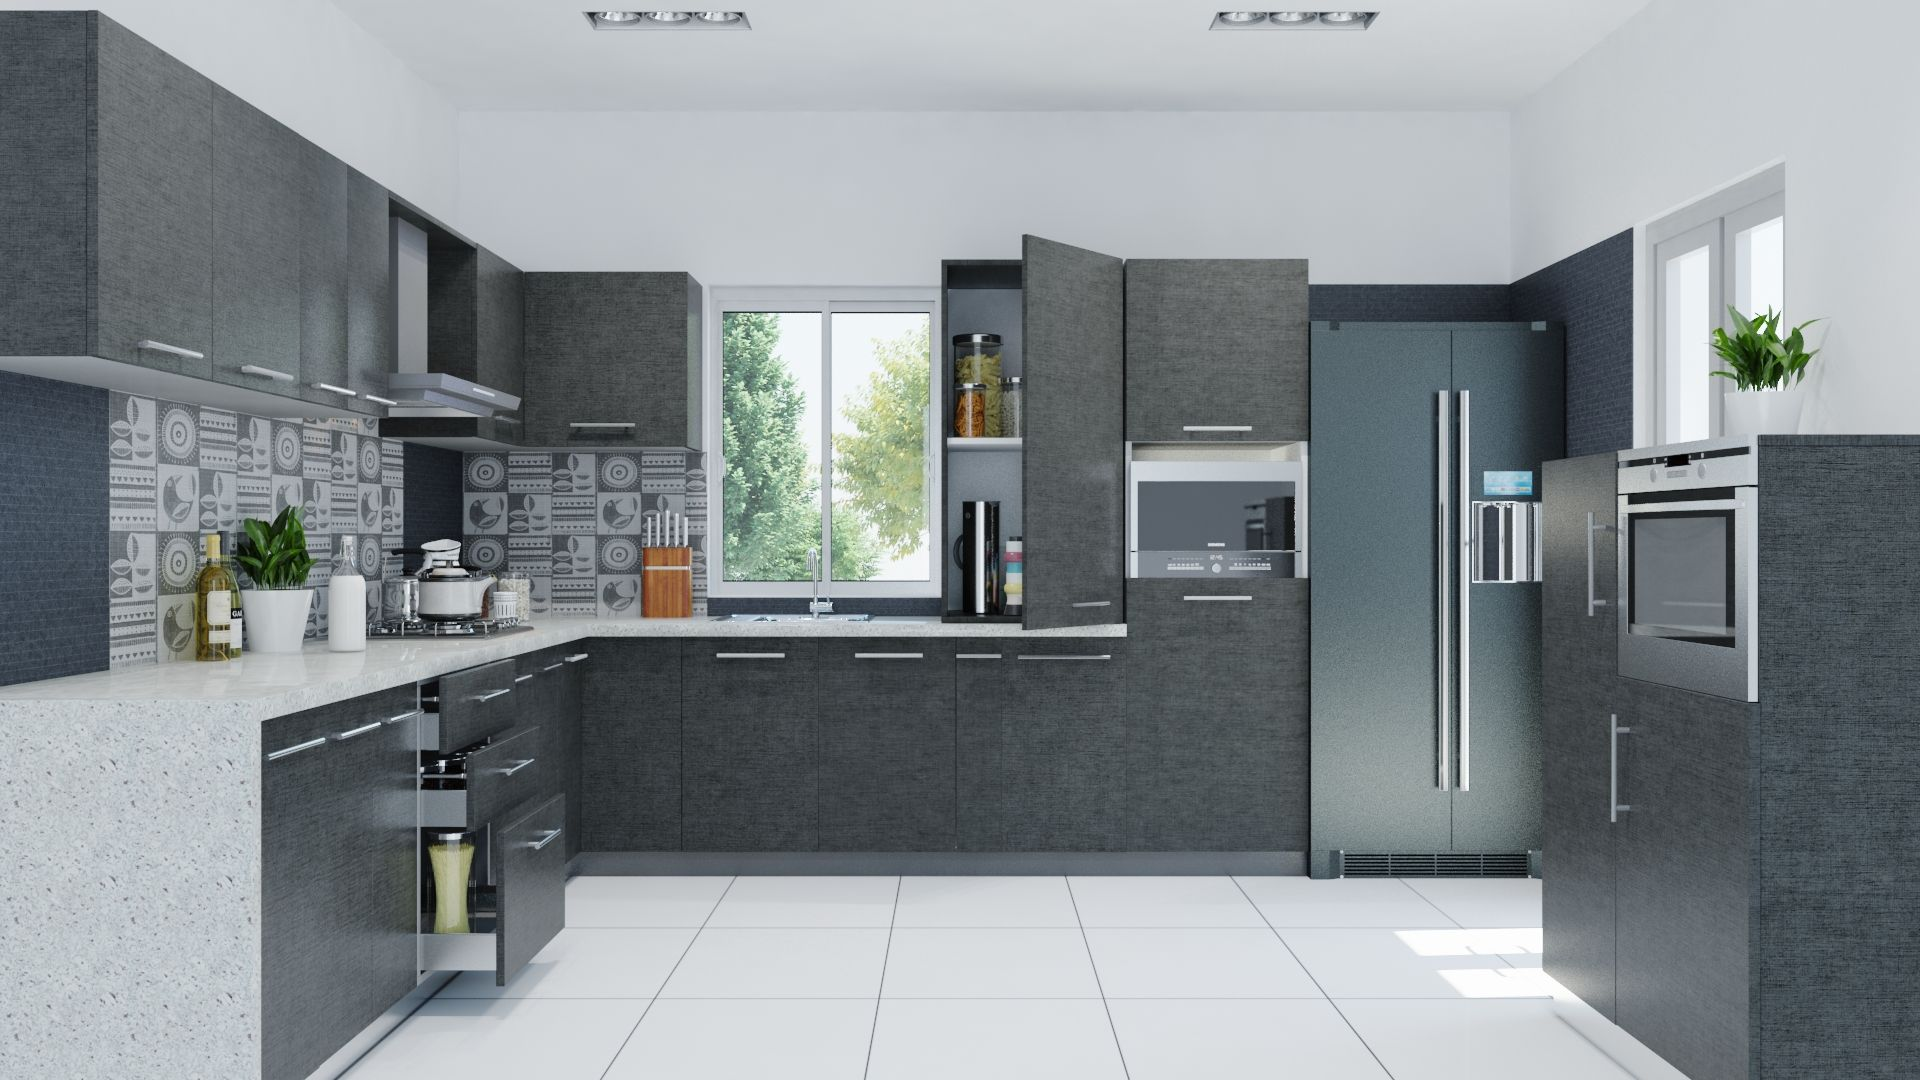 Kitchen:Grey Modern Kitchen Cabinet White Ceramic Tile Floor Modern  Refrigerator Accent Backsplash Kitchen Cabinet With Storage Glass Window  Wall Kitchen ...